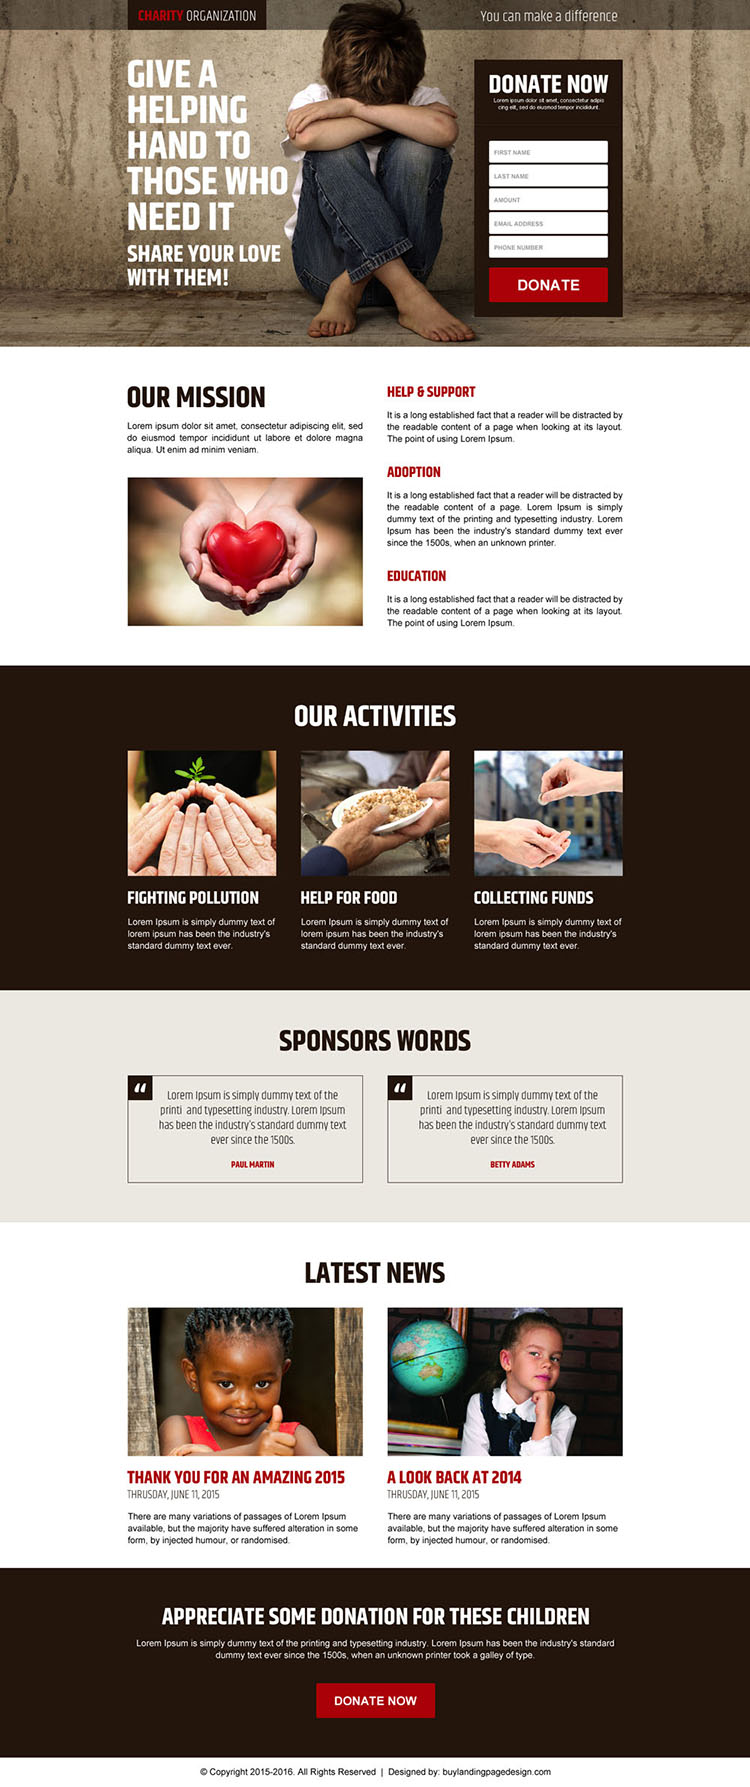 charity organization landing page design template